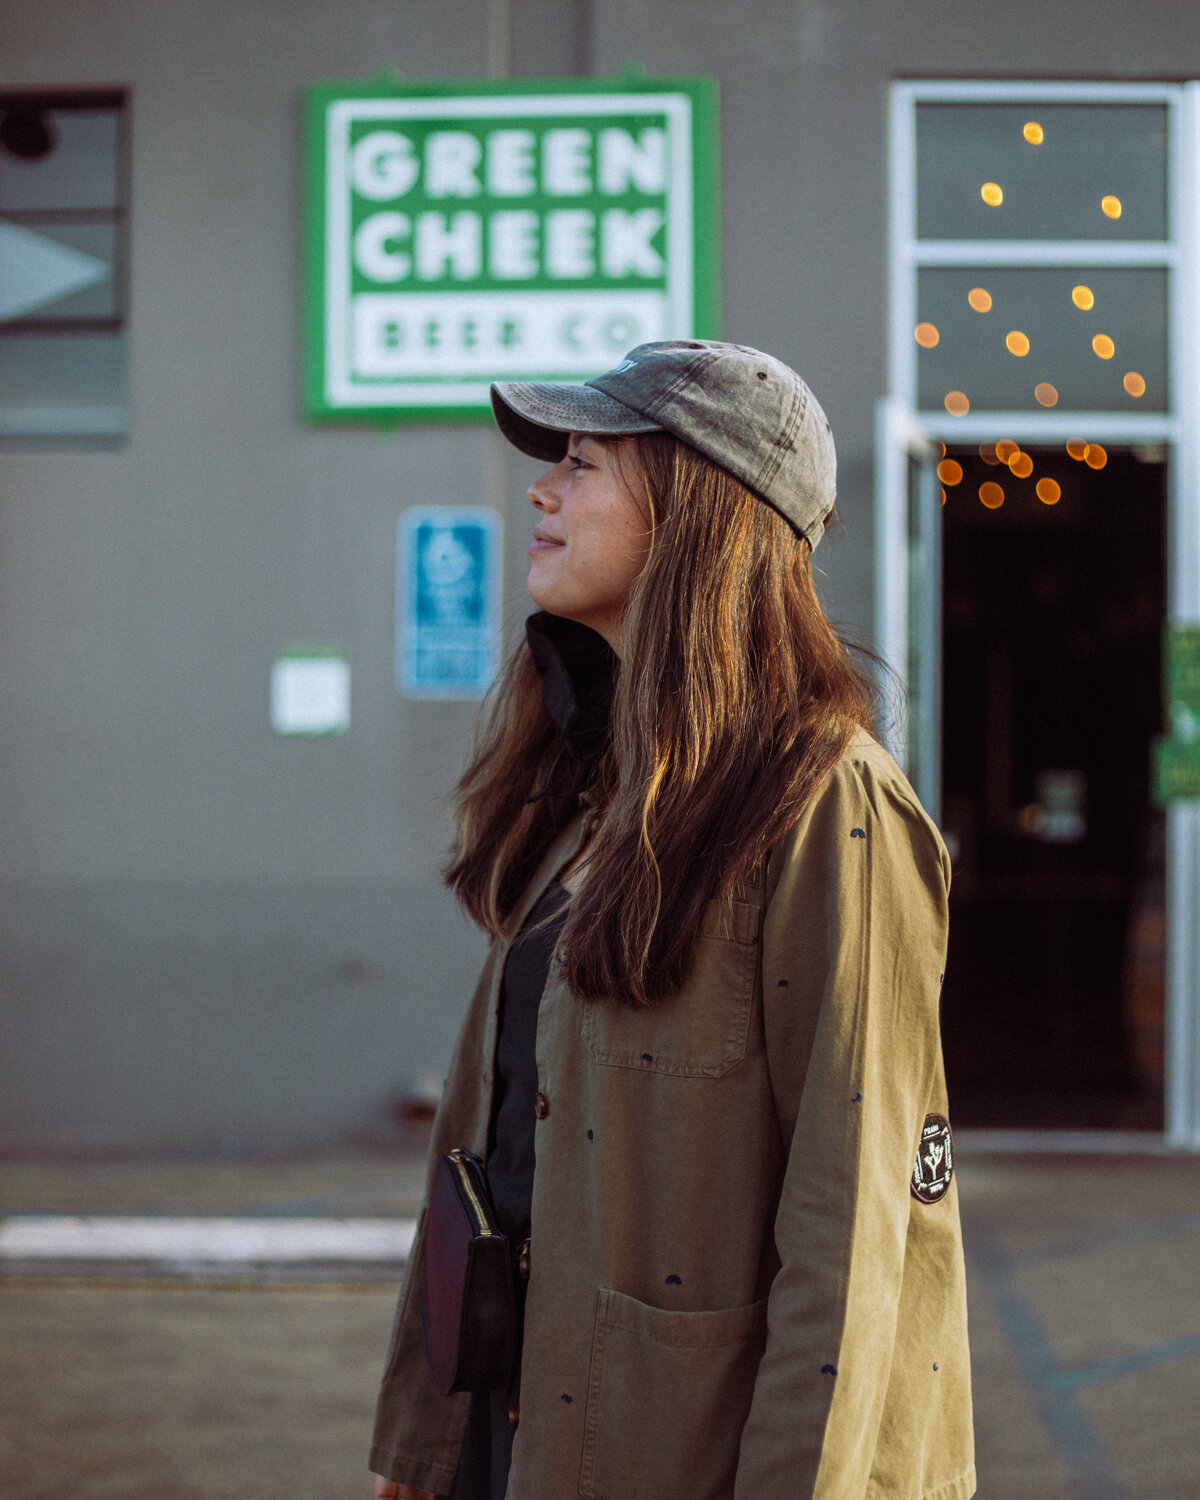 Rachel Off Duty: A Woman in a Green Jacket and Gray Hat Standing in Front of a Brewery